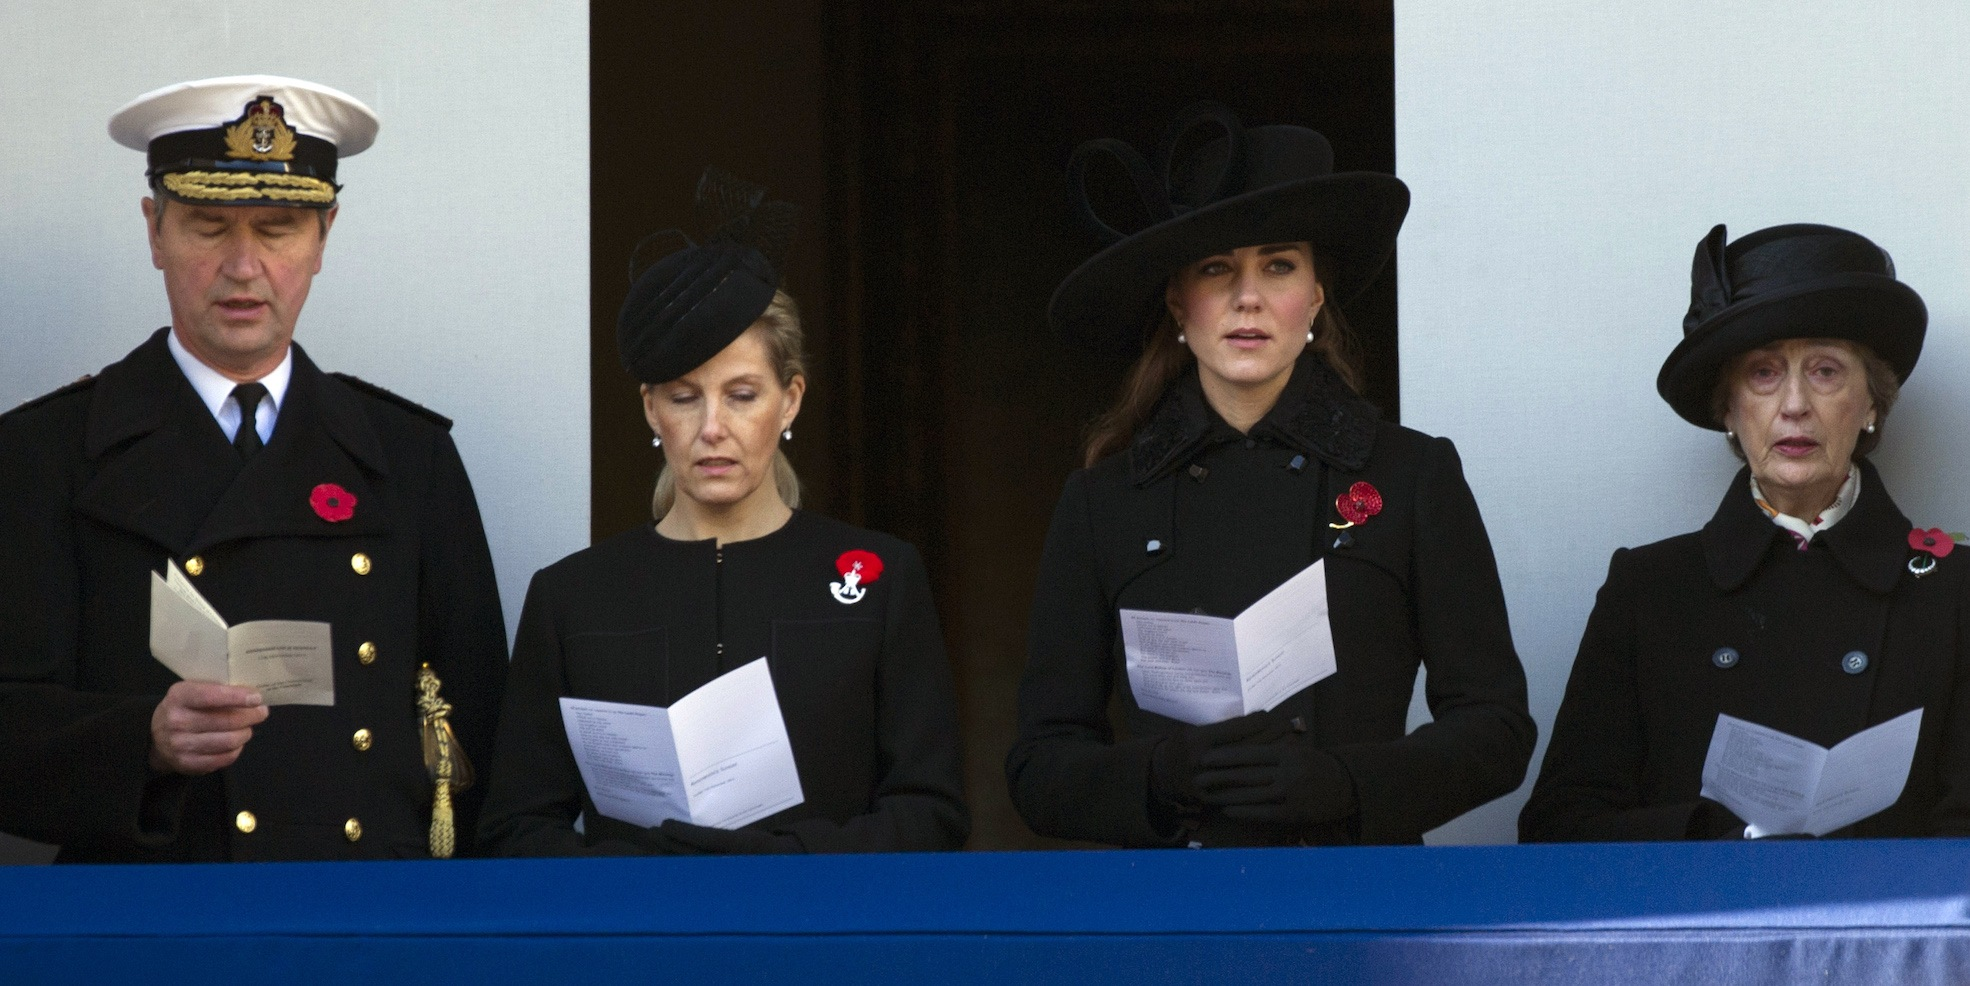 Britain's Catherine, Duchess of Cambridge (2nd R), Sophie, Countess of Wessex (2nd L), Vice Admiral Timothy Laurence (L), and Lady in Waiting Lady Susan Hussey (R)